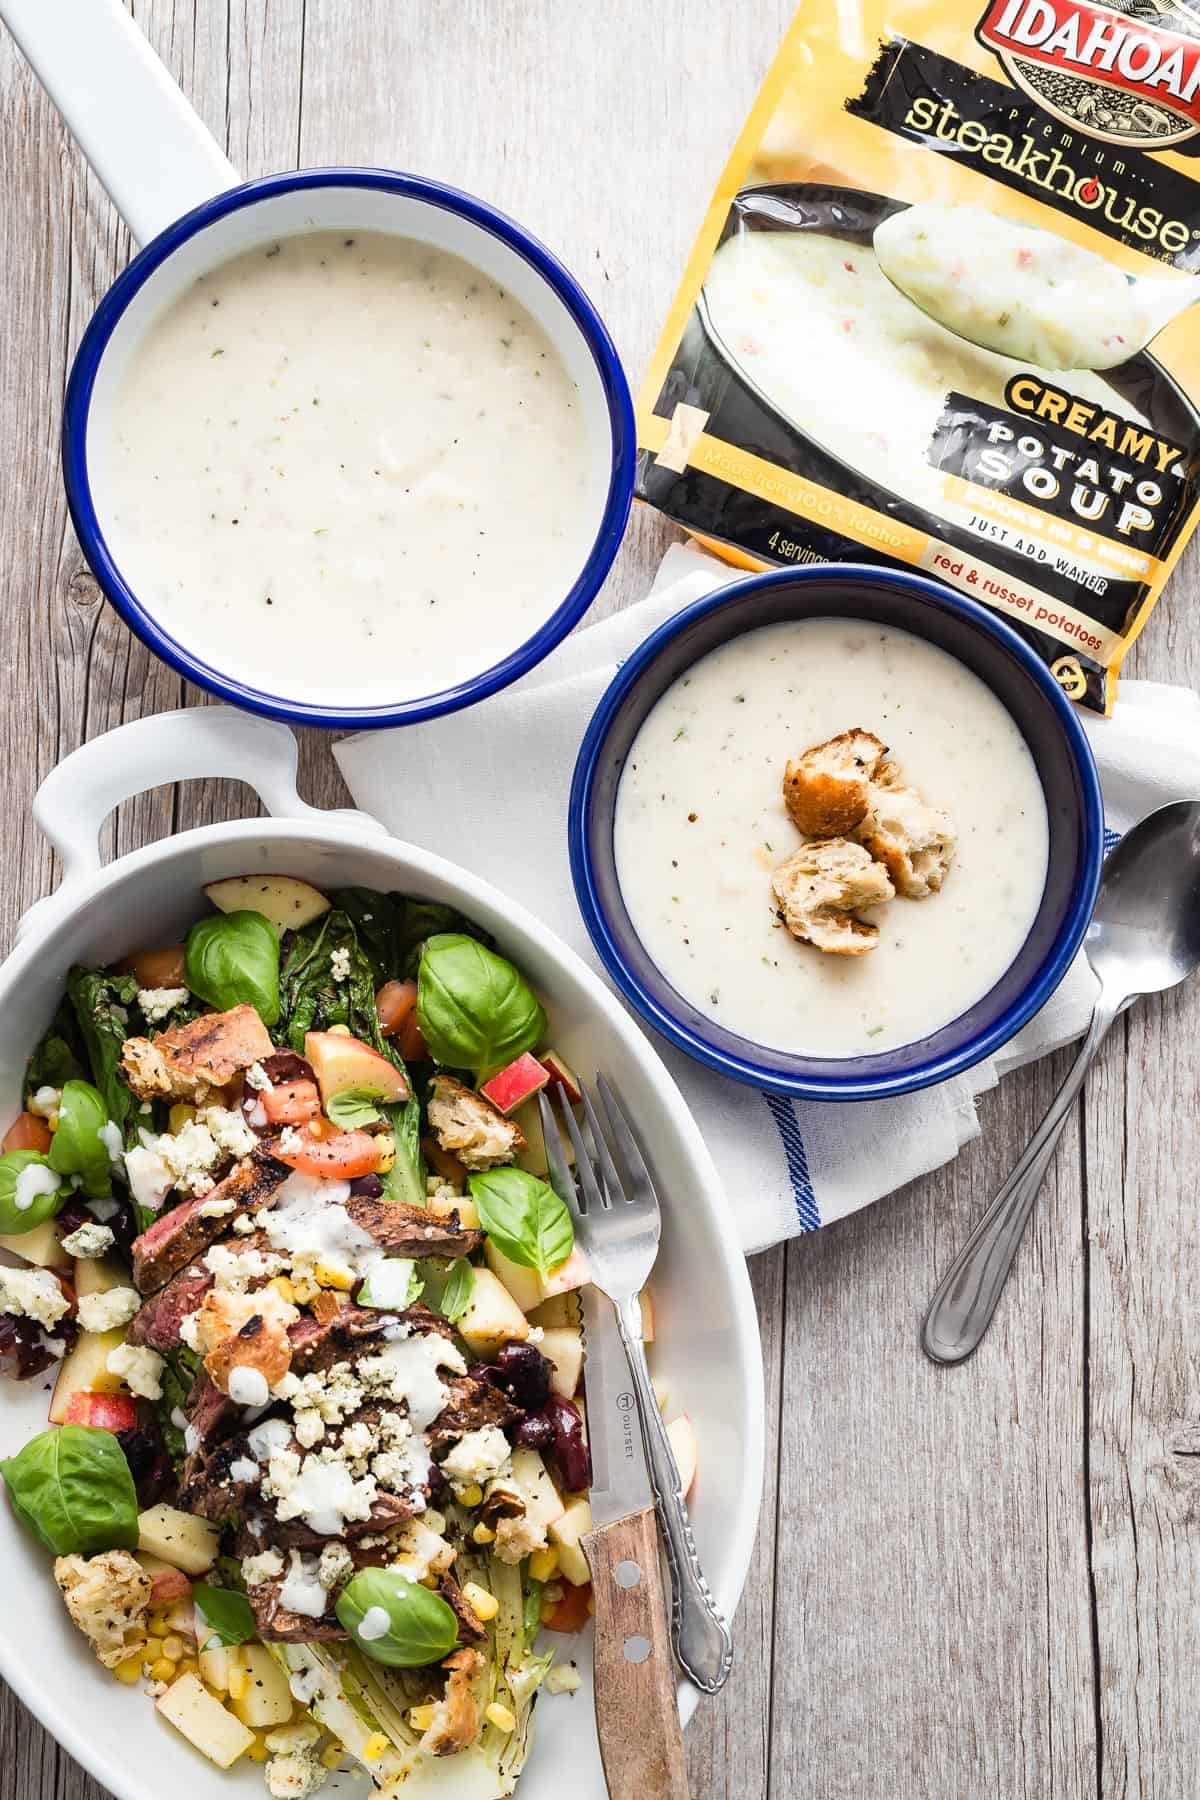 Grilled Romaine Salad is the perfect accompaniment to this creamy steakhouse style potato soup packed with red potatoes and red potato skins!